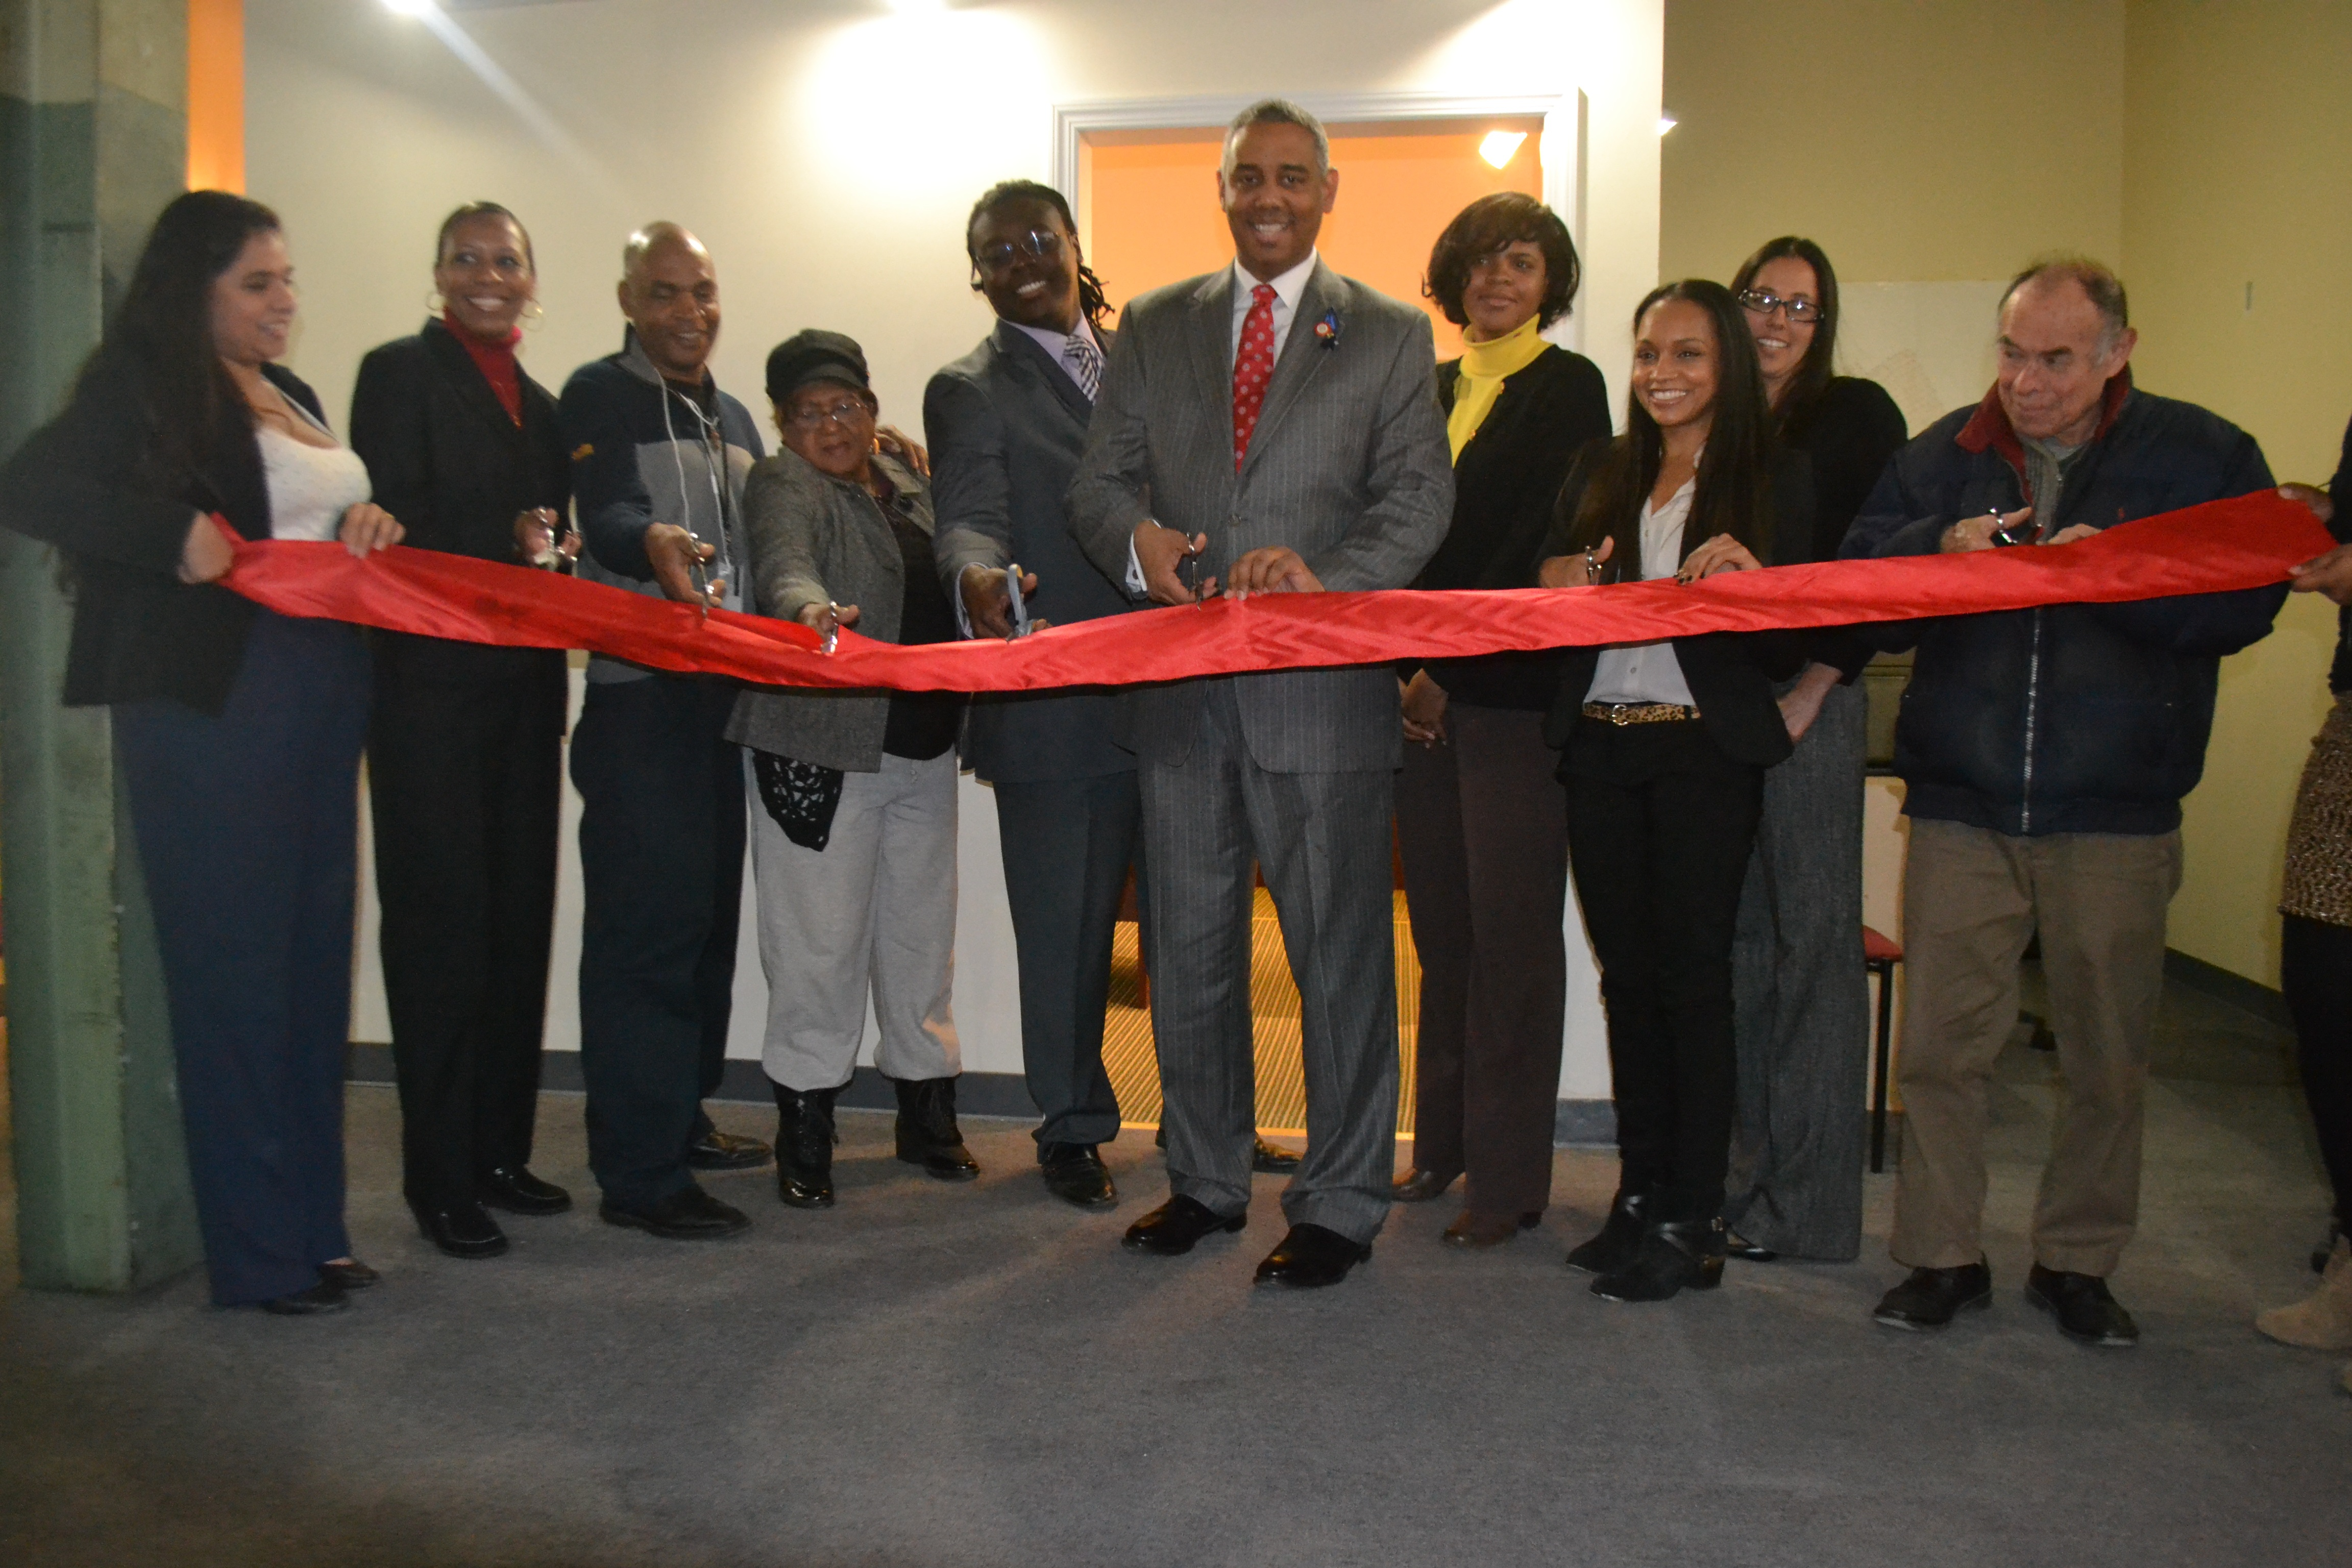 Councilman opens legal center in his Jamaica office aimed at helping immigrants